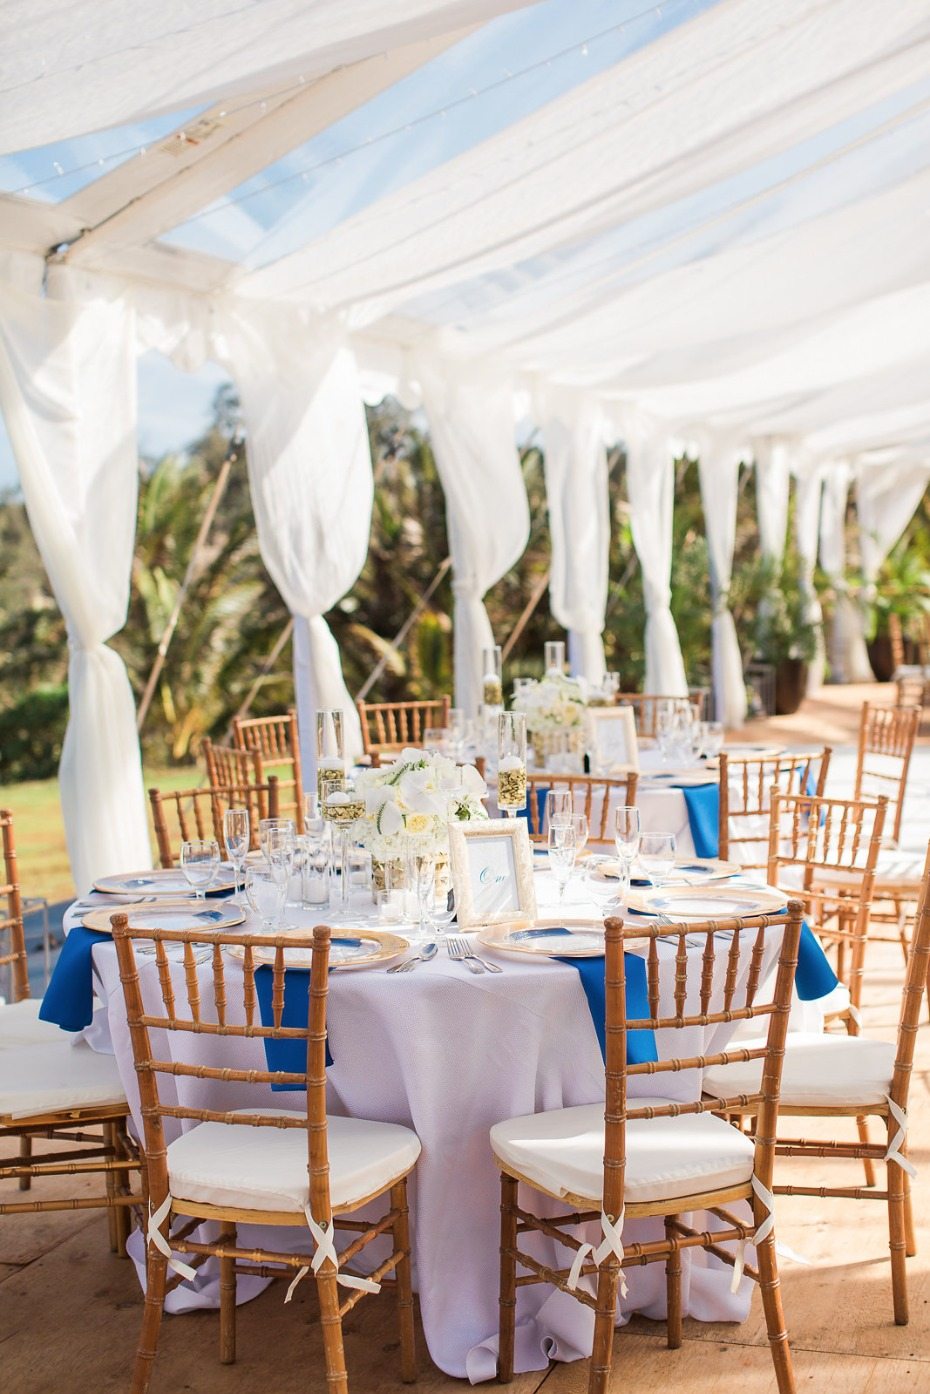 Chic tent reception